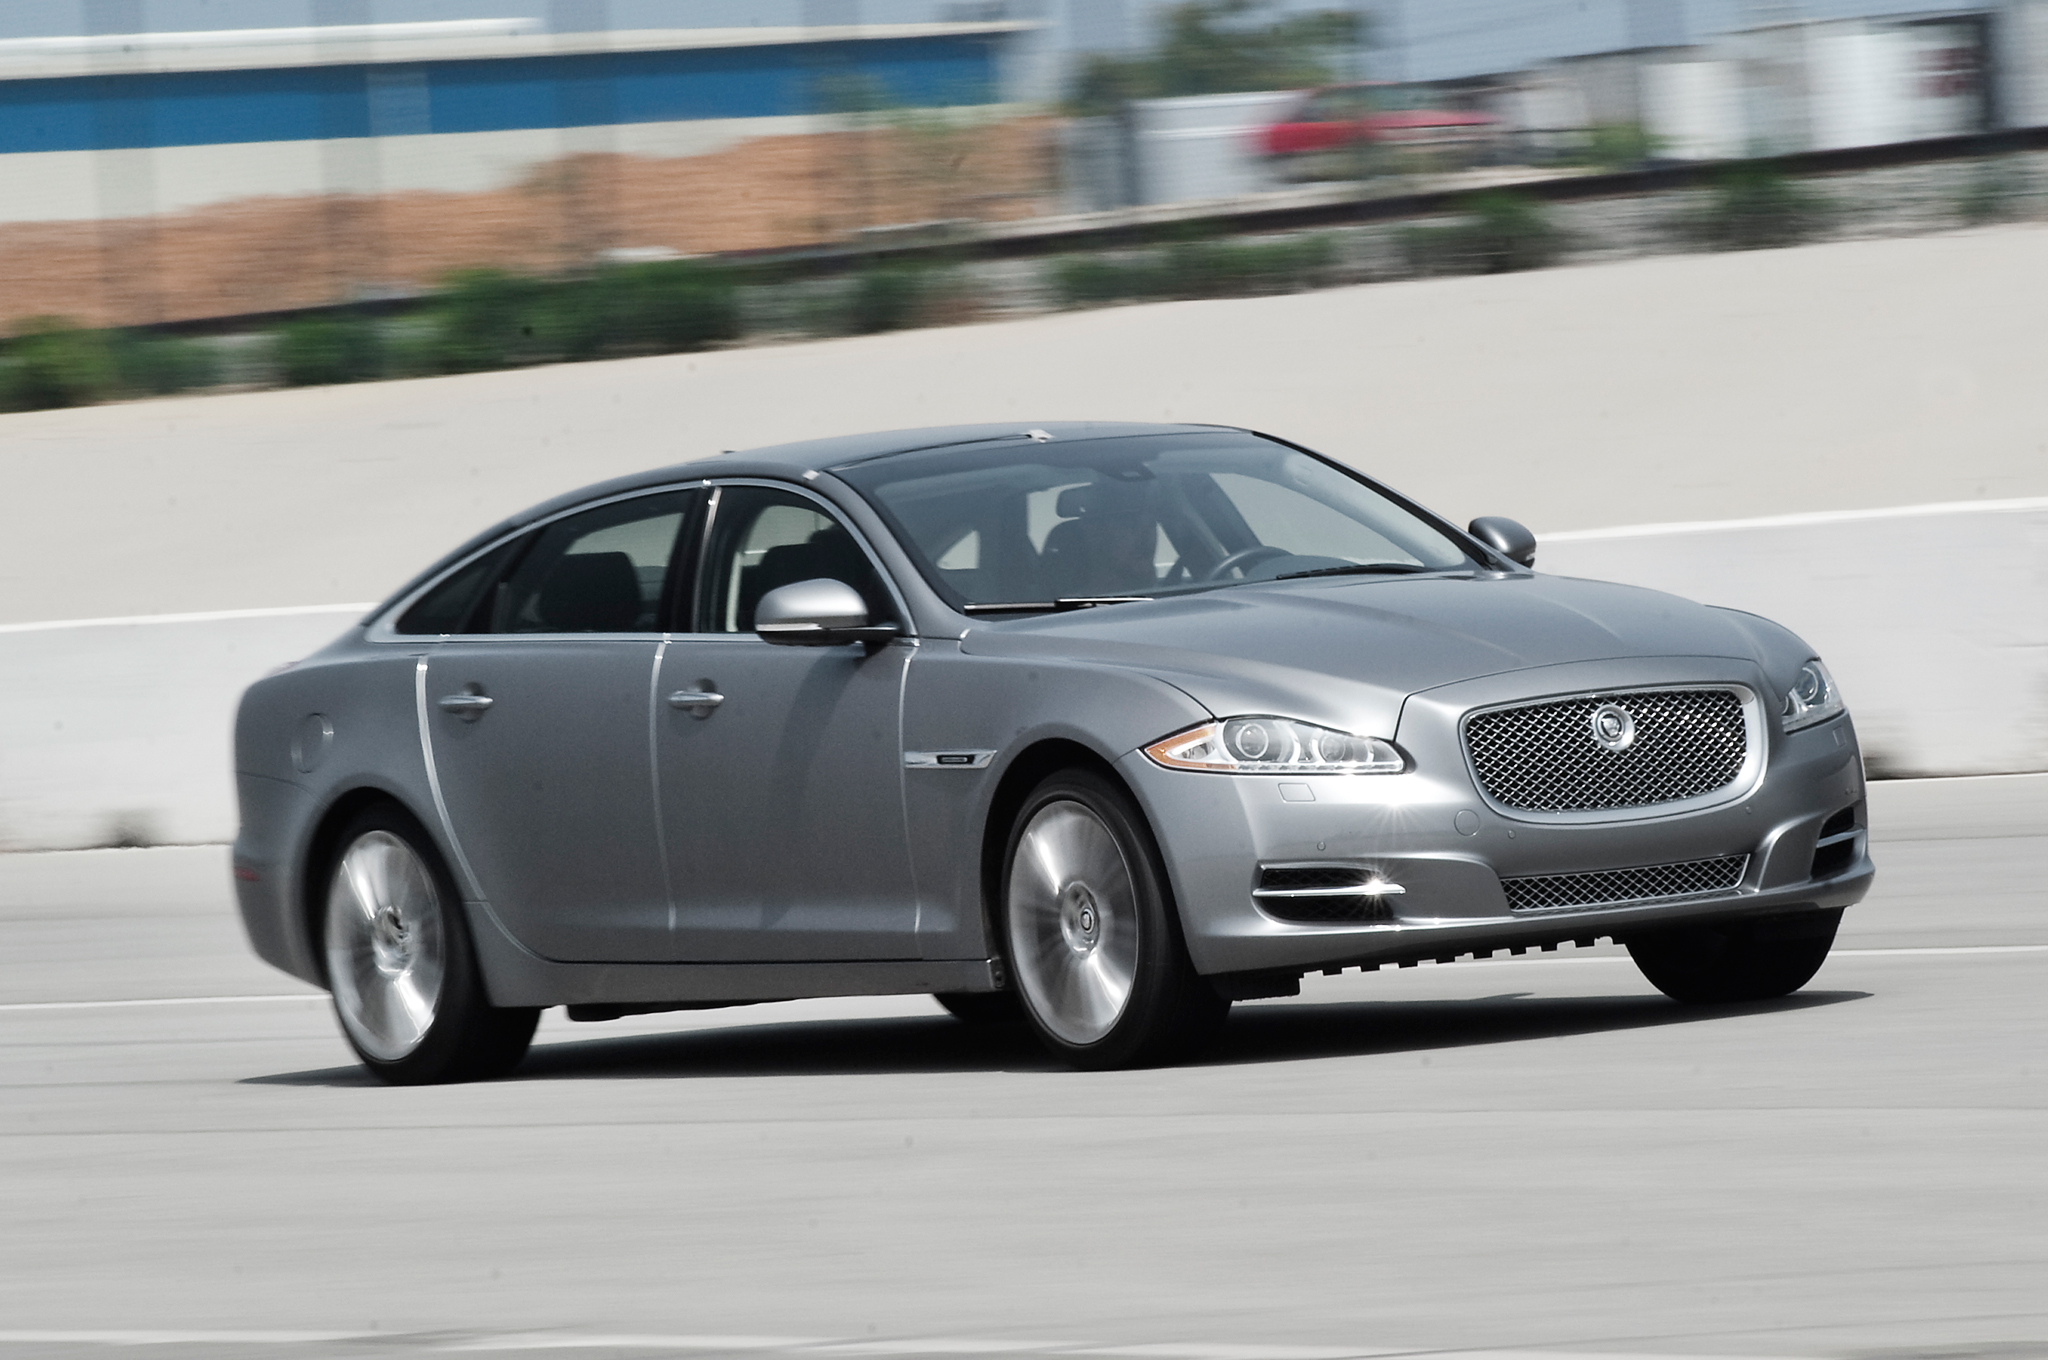 2013 jaguar xjl 5.0 supercharged first test - motortrend